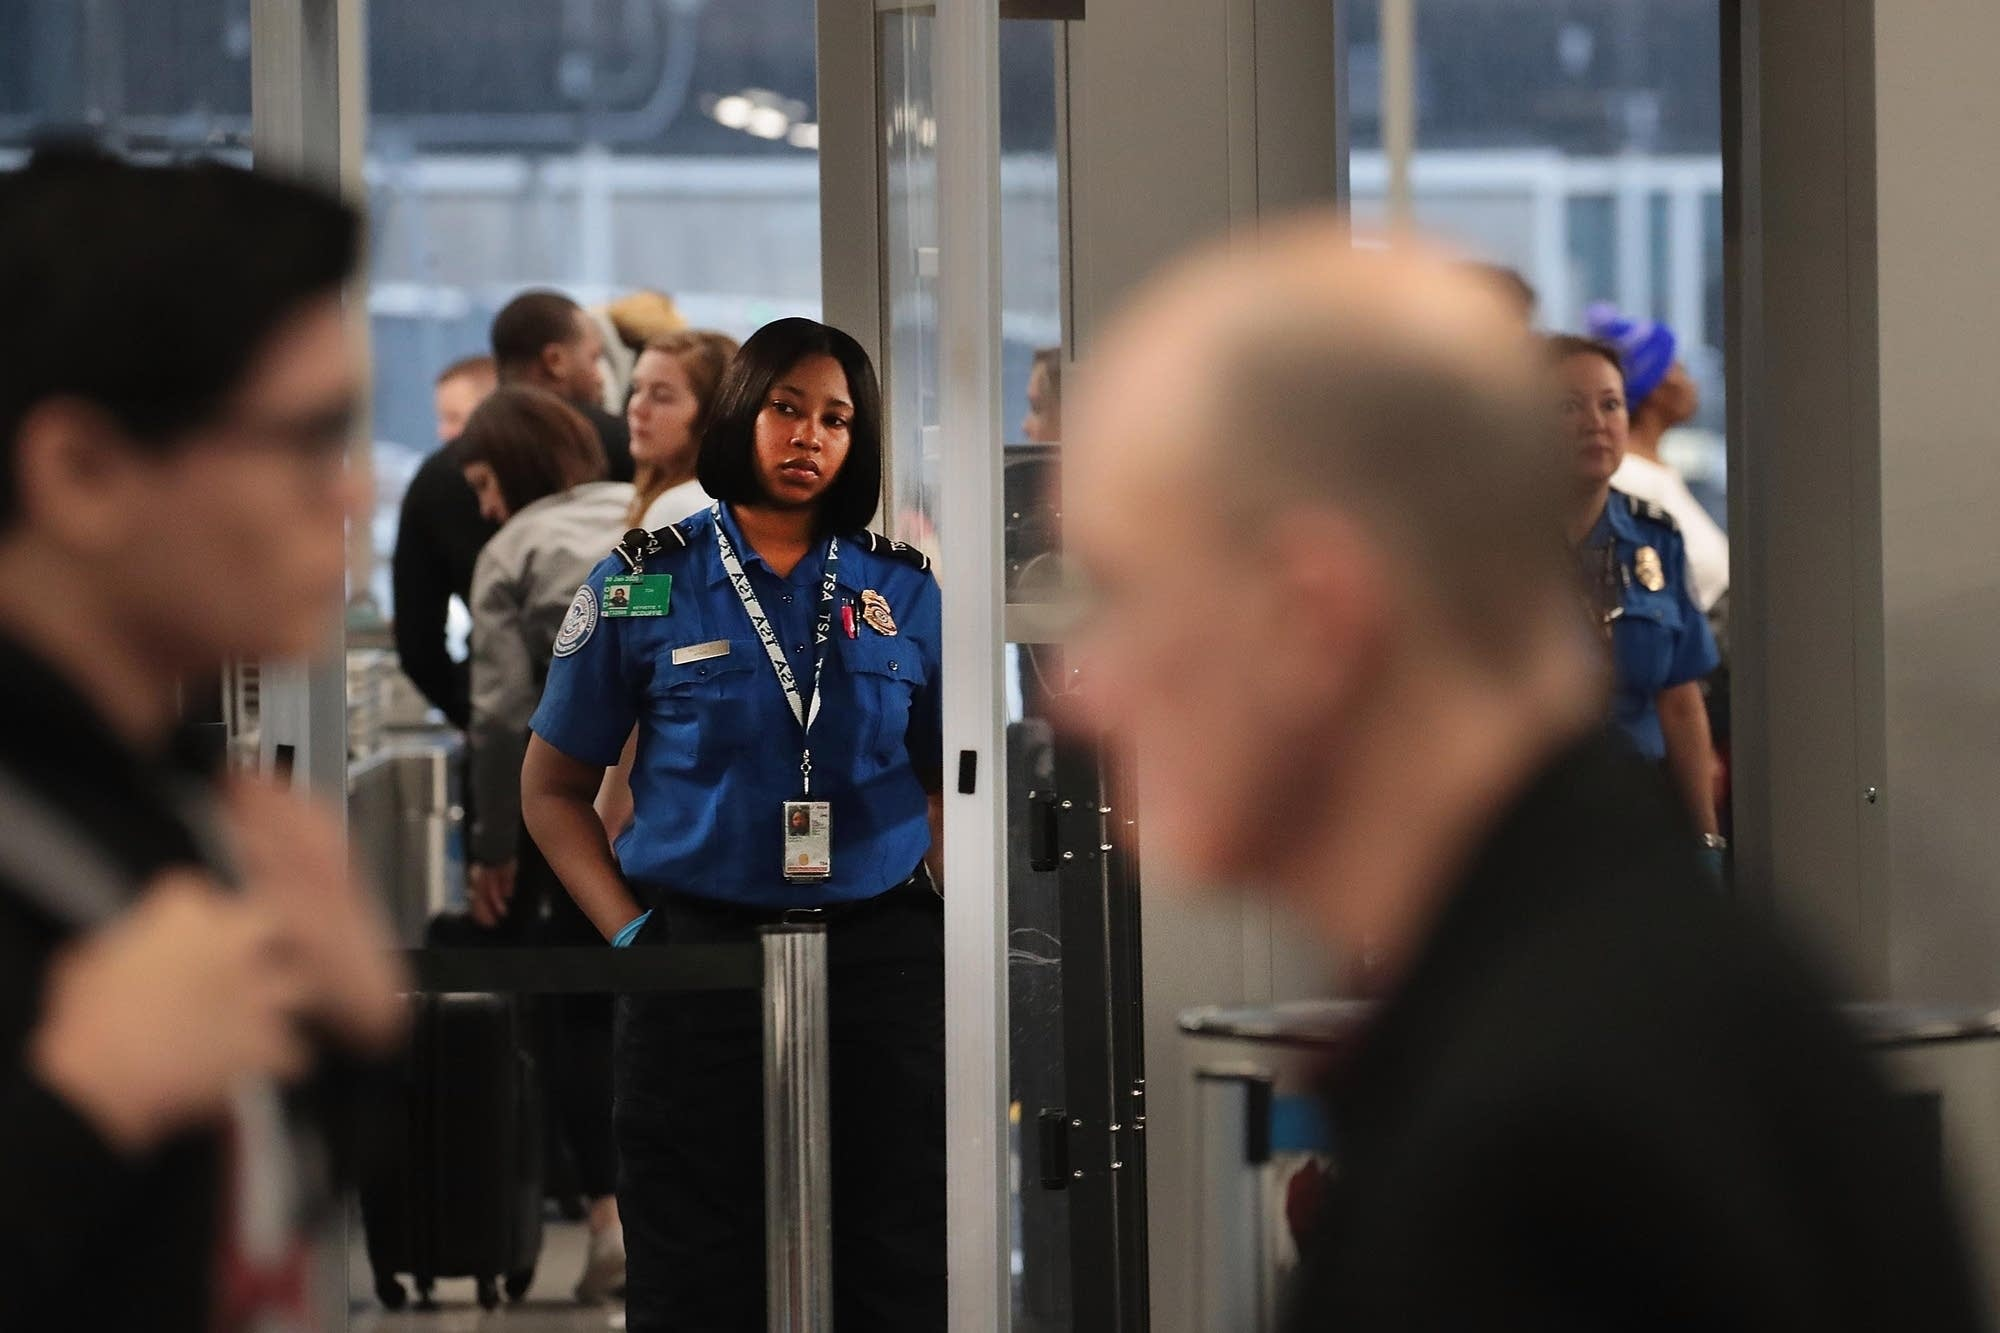 For transgender travelers, tsa checks and body scanners can be traumatic